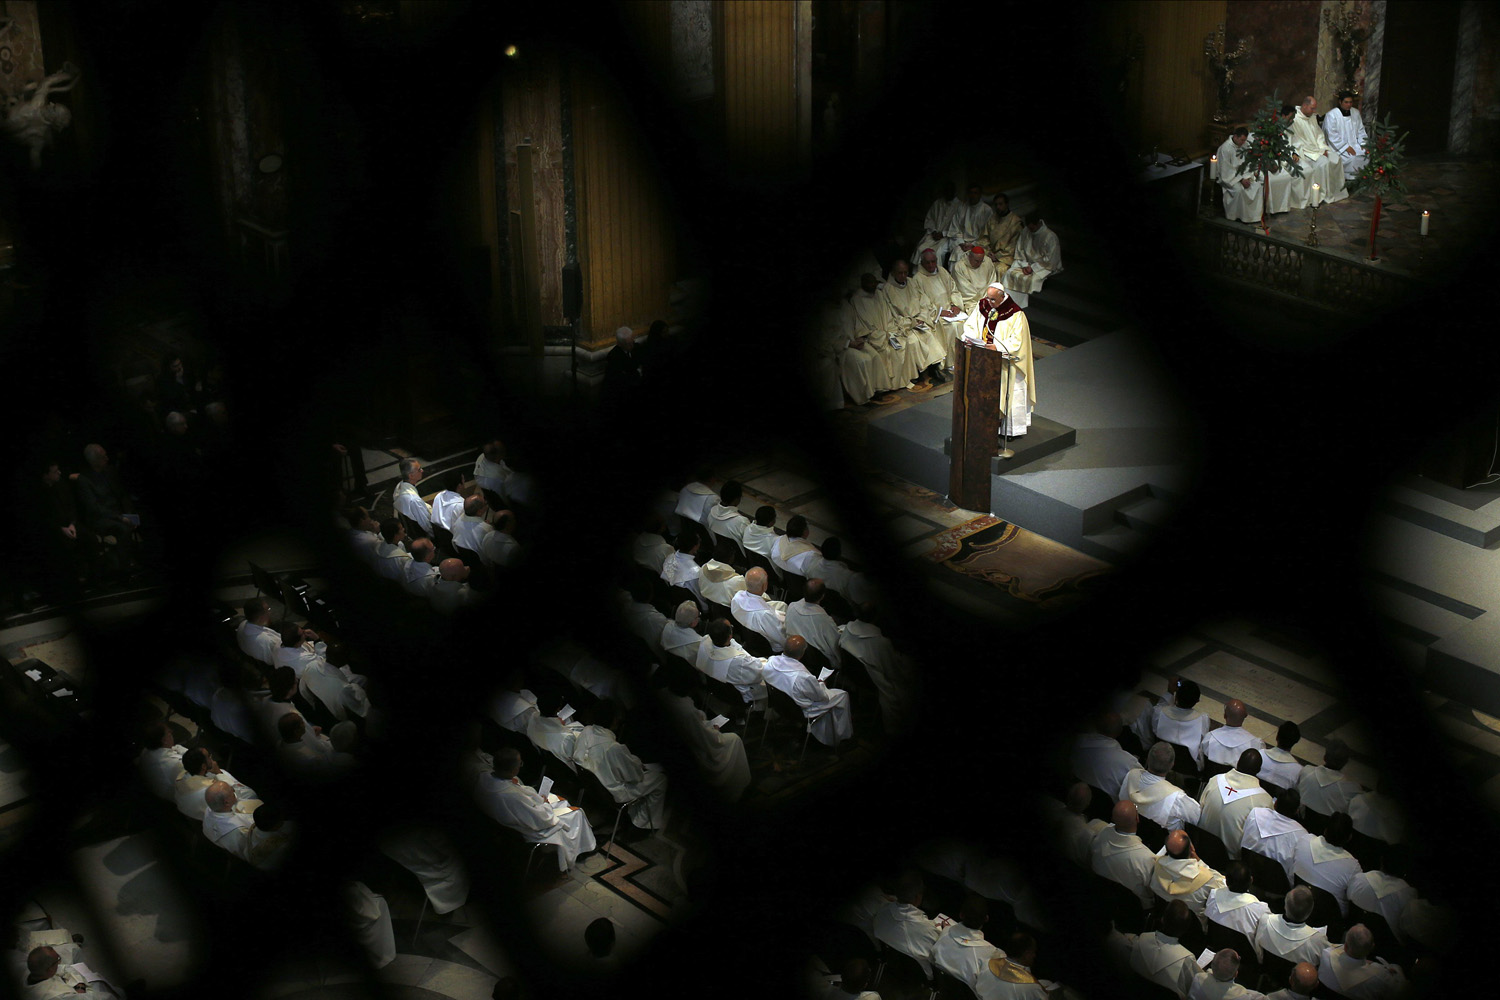 Jan. 3, 2013. Pope Francis conducts a mass at the Church of the Most Holy Name of Jesus in downtown Rome, Italy. January 3, 2014.